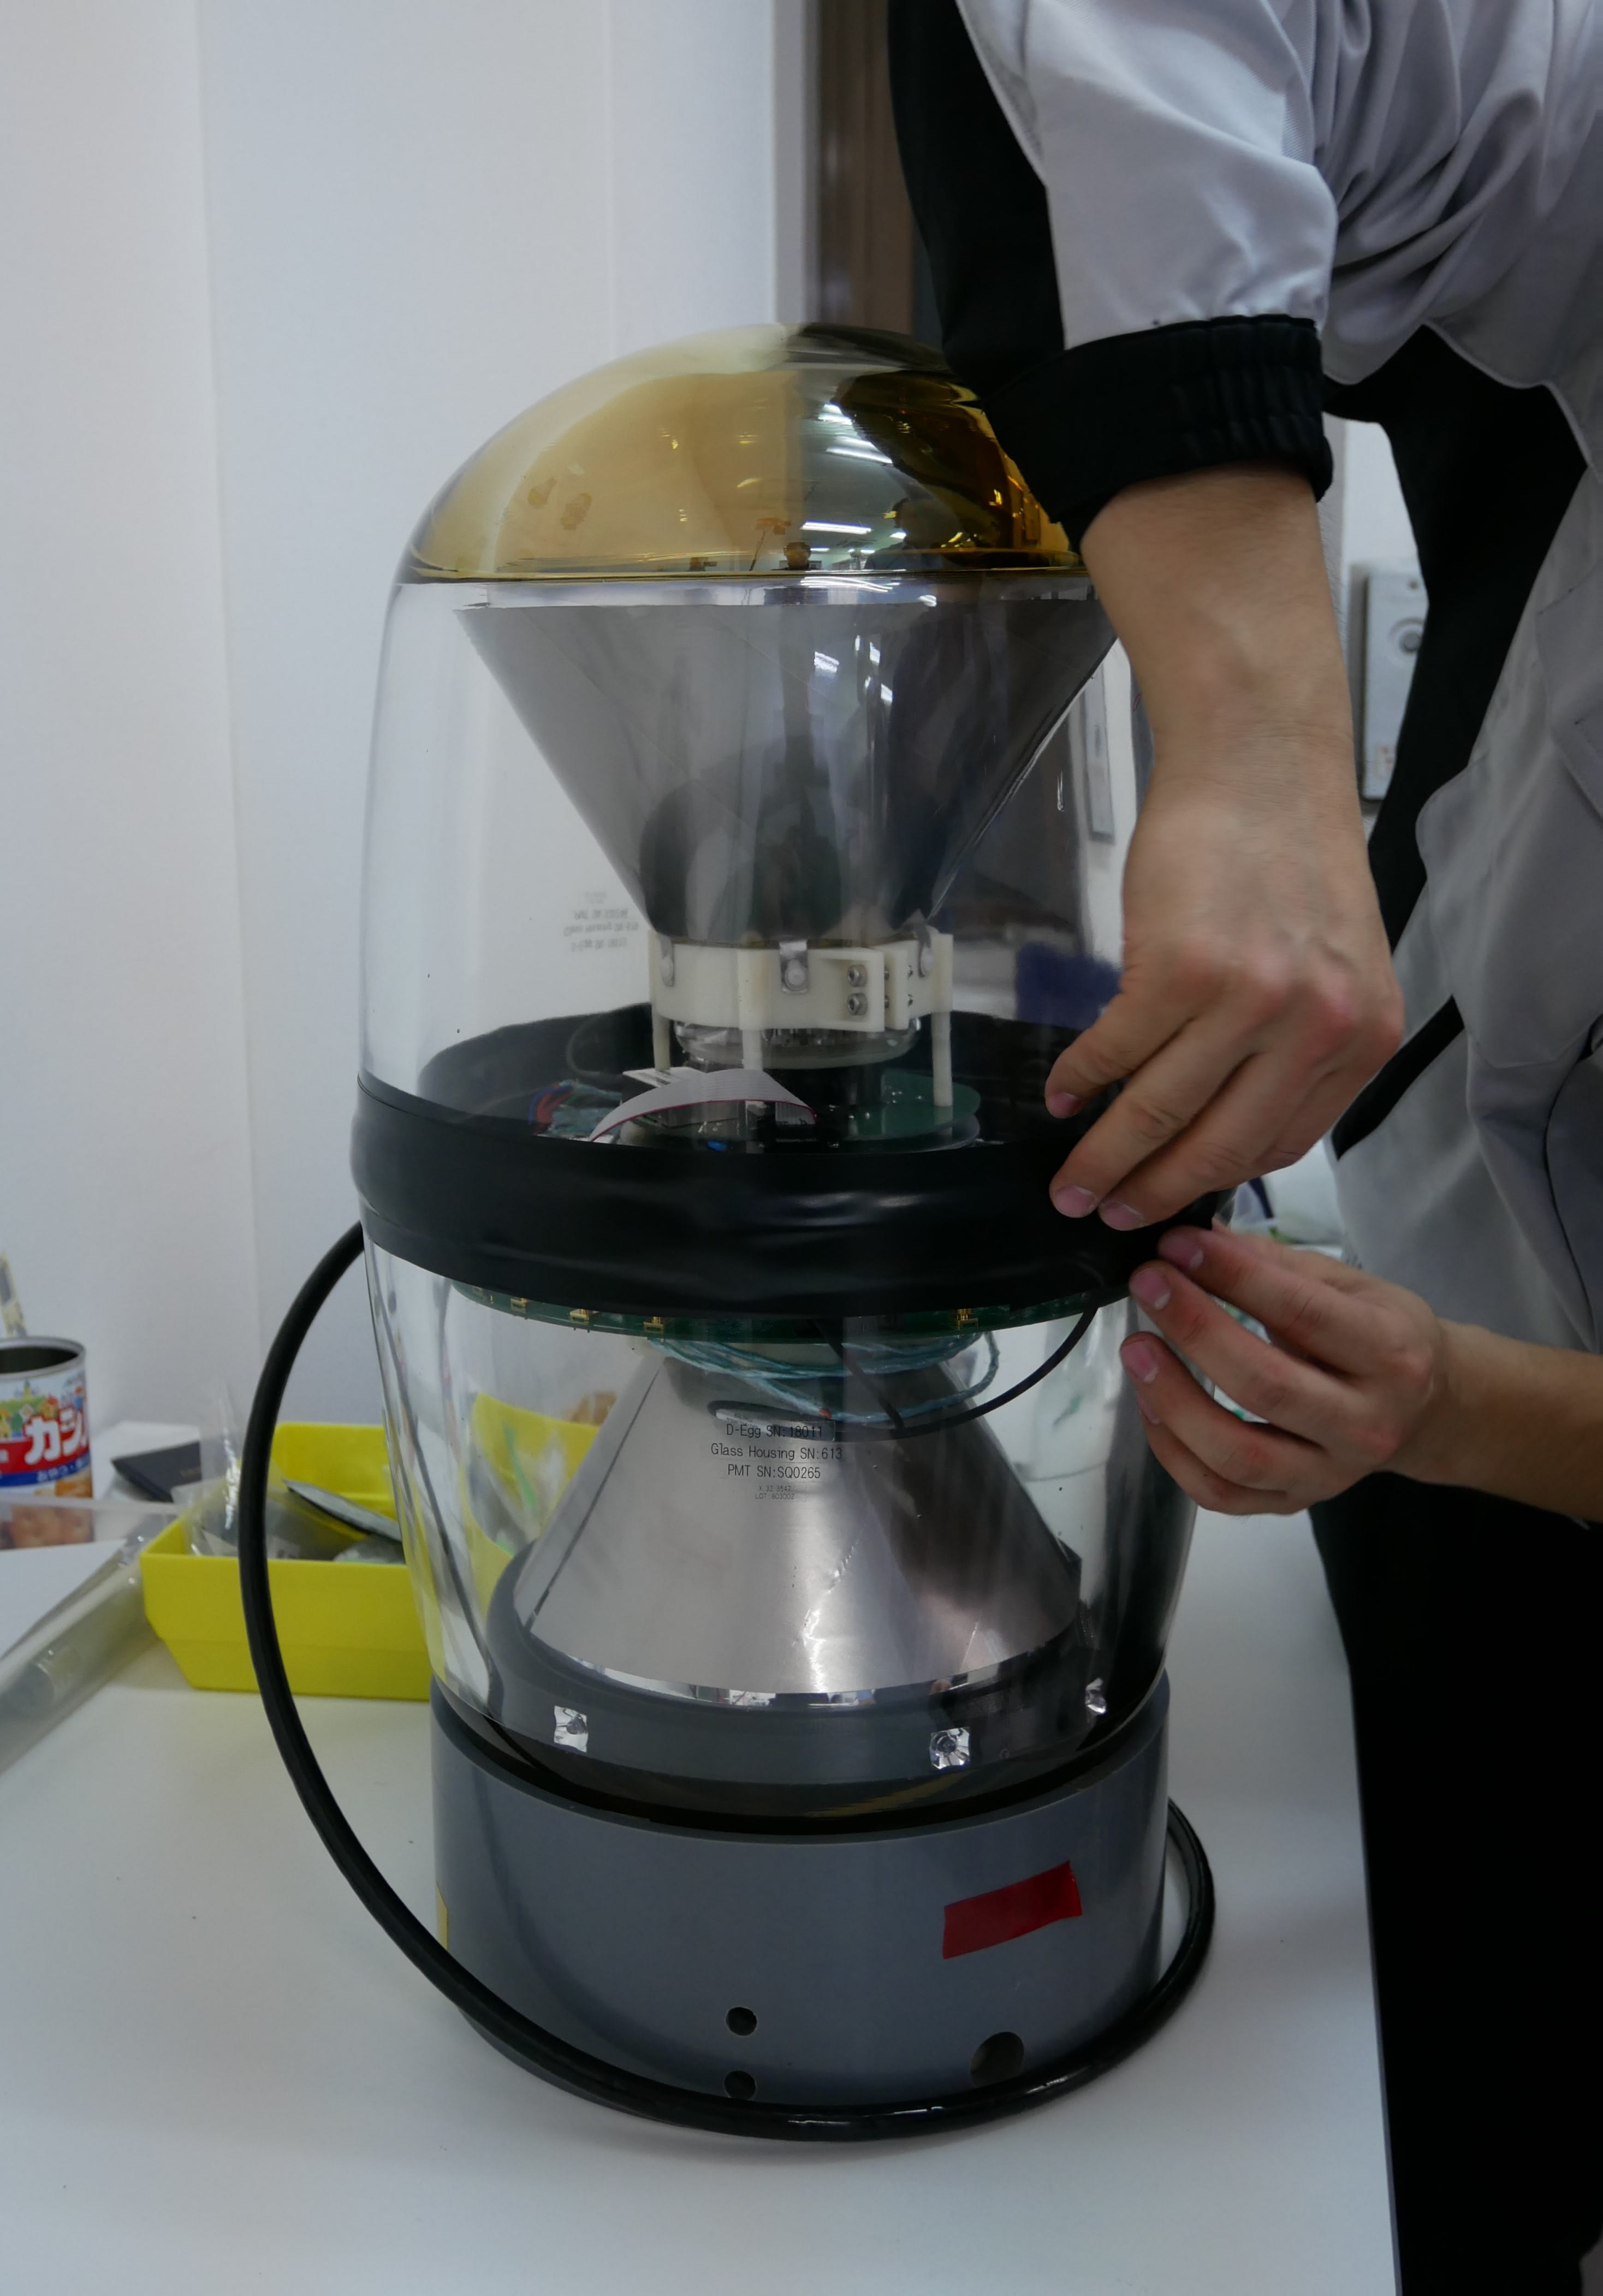 Prototype of a D-Egg